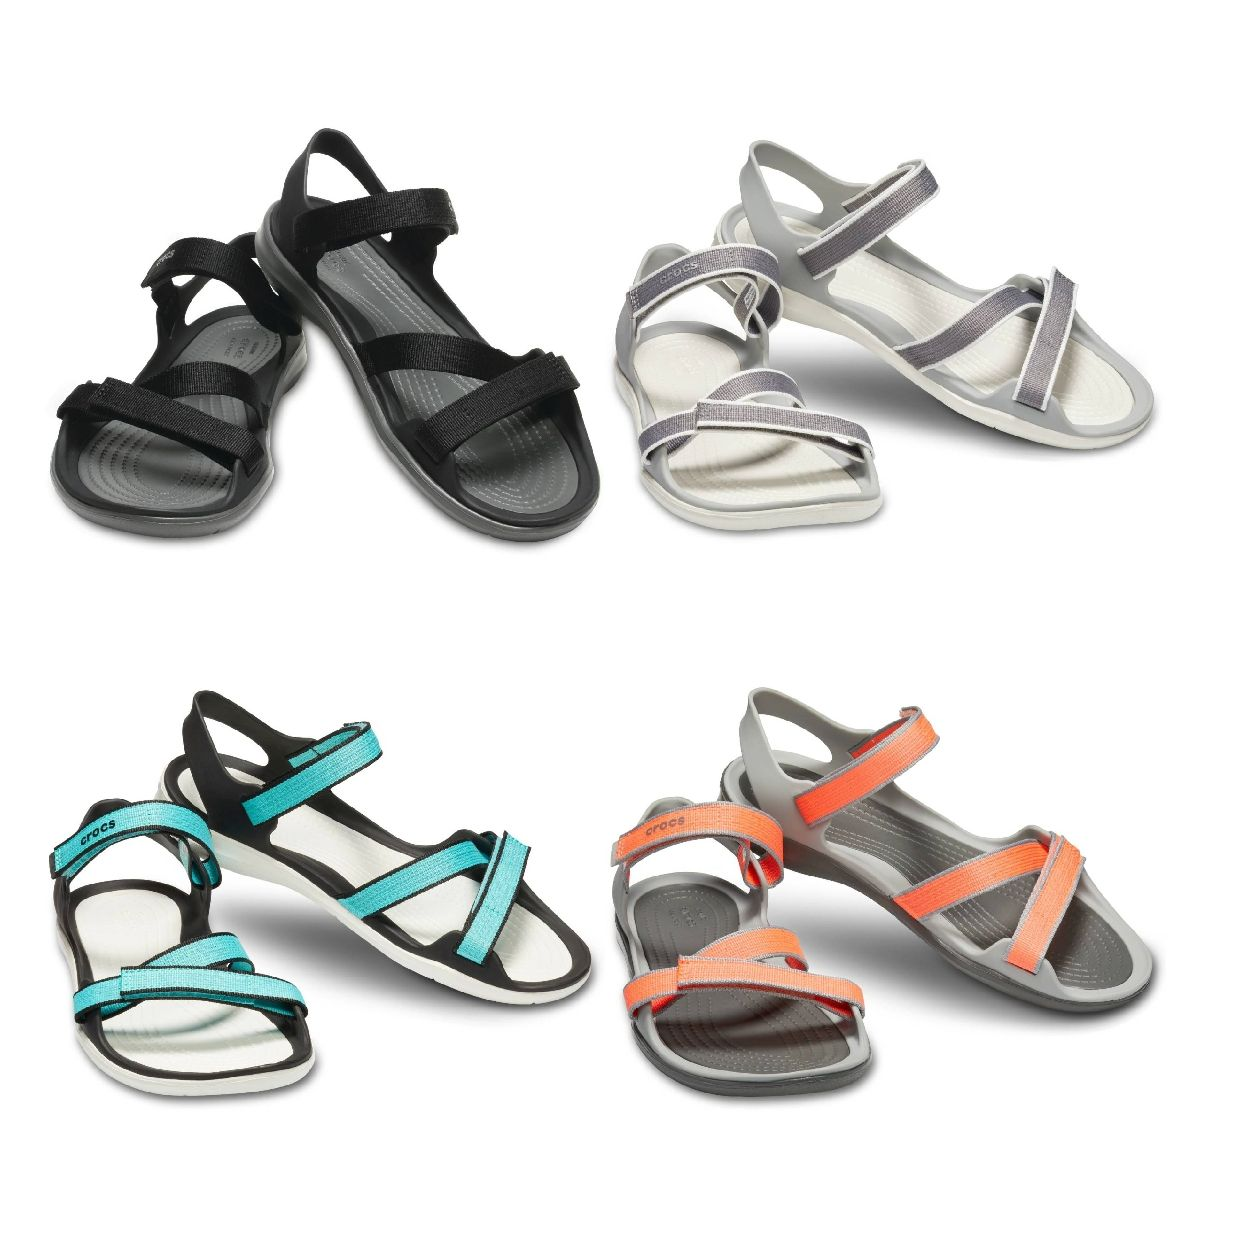 Crocs Swiftwater Webbing Sandal W Sandalen Ballerinas Synthetik Damen FS19